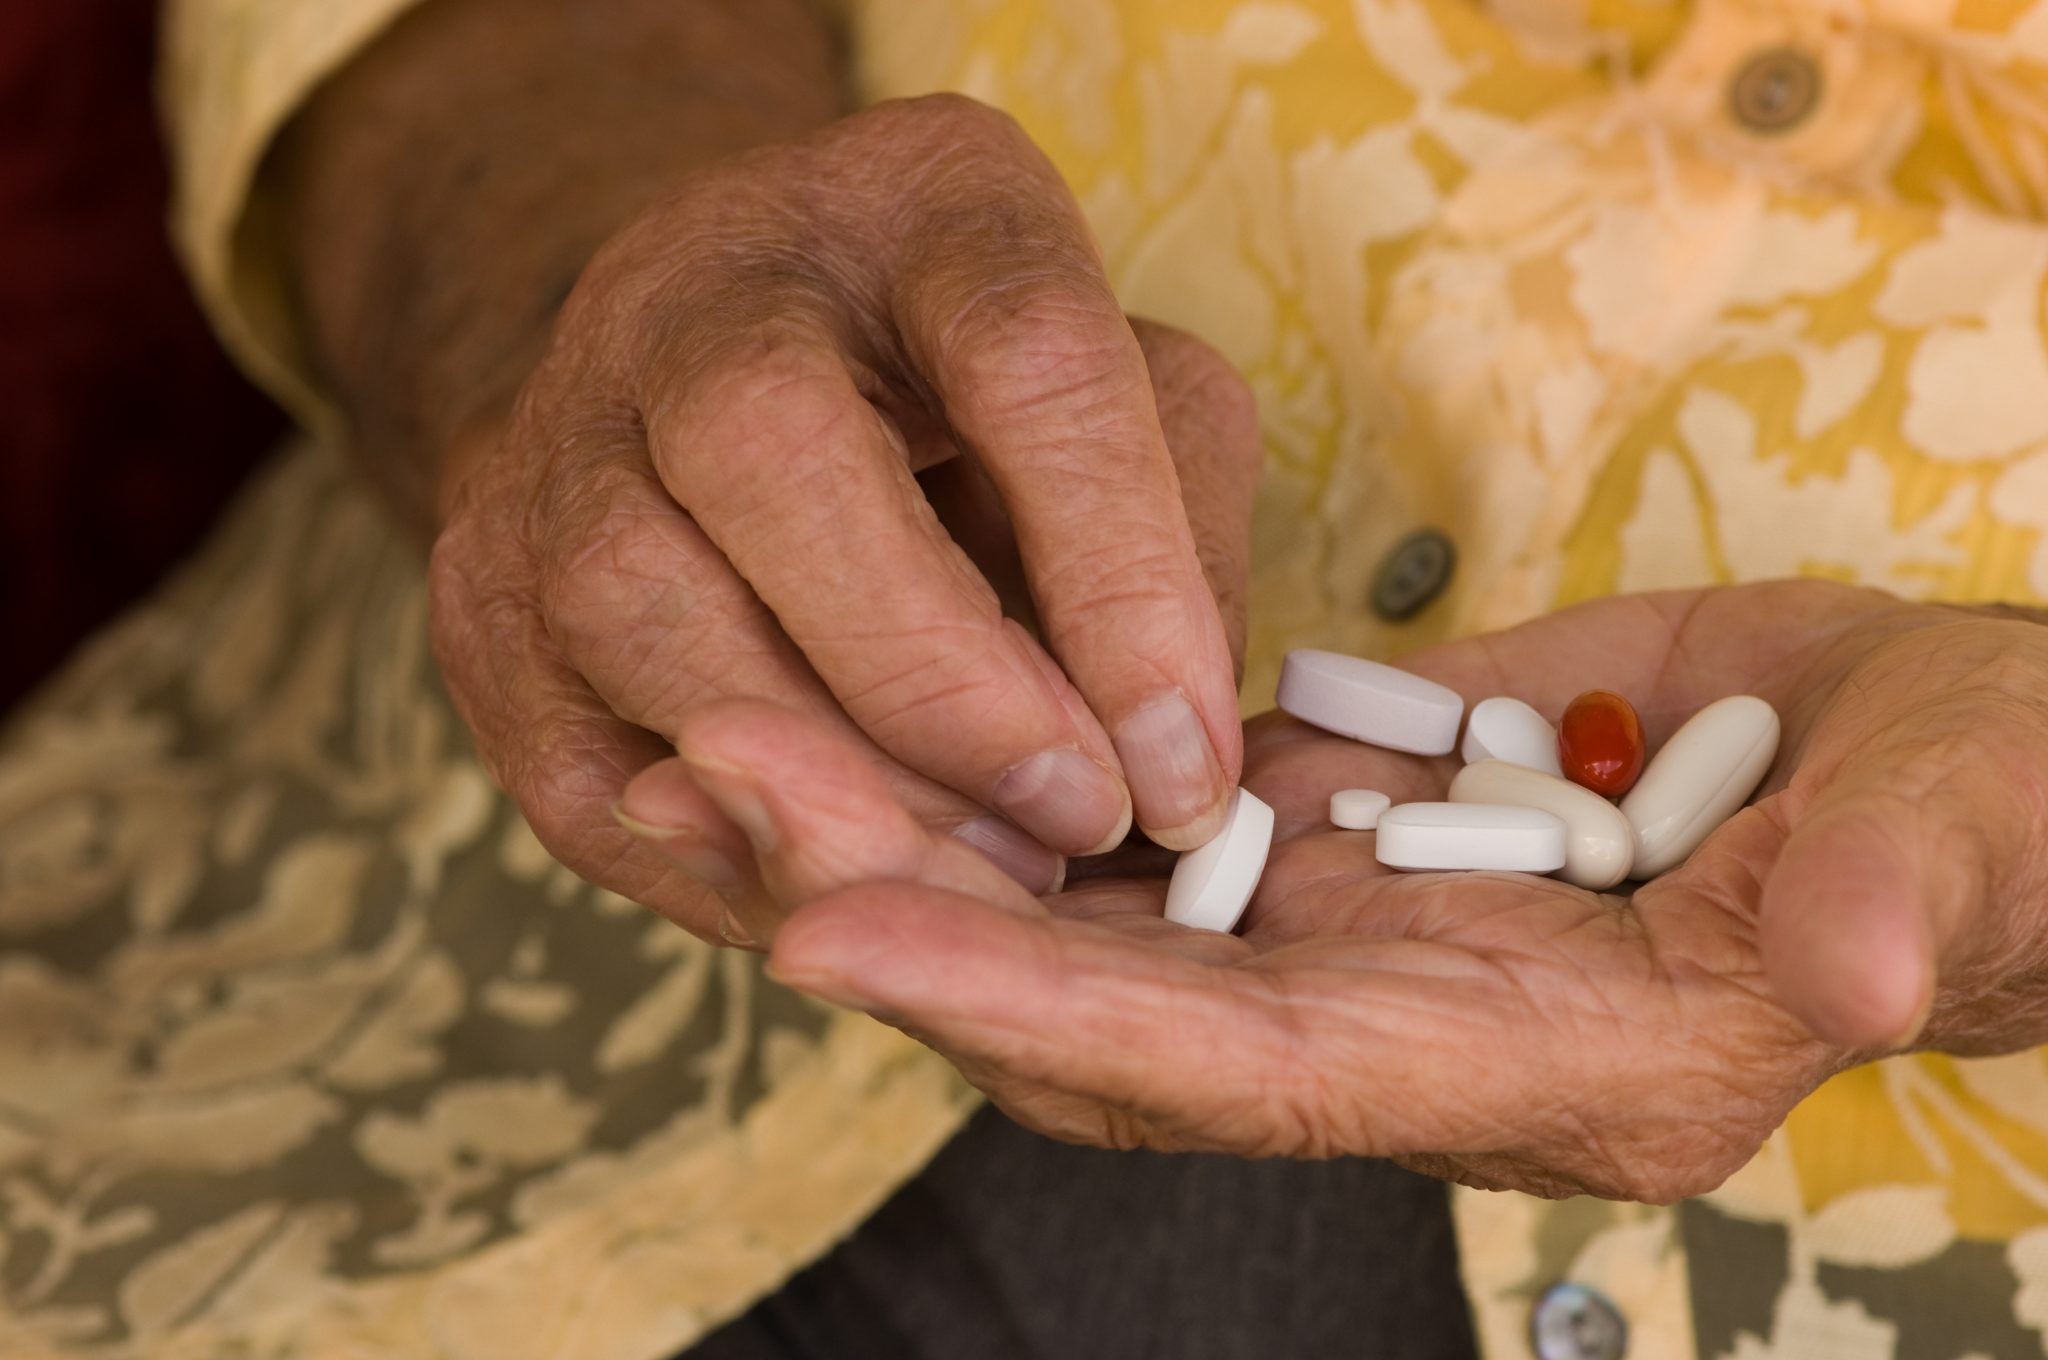 Older person's hand holding medication